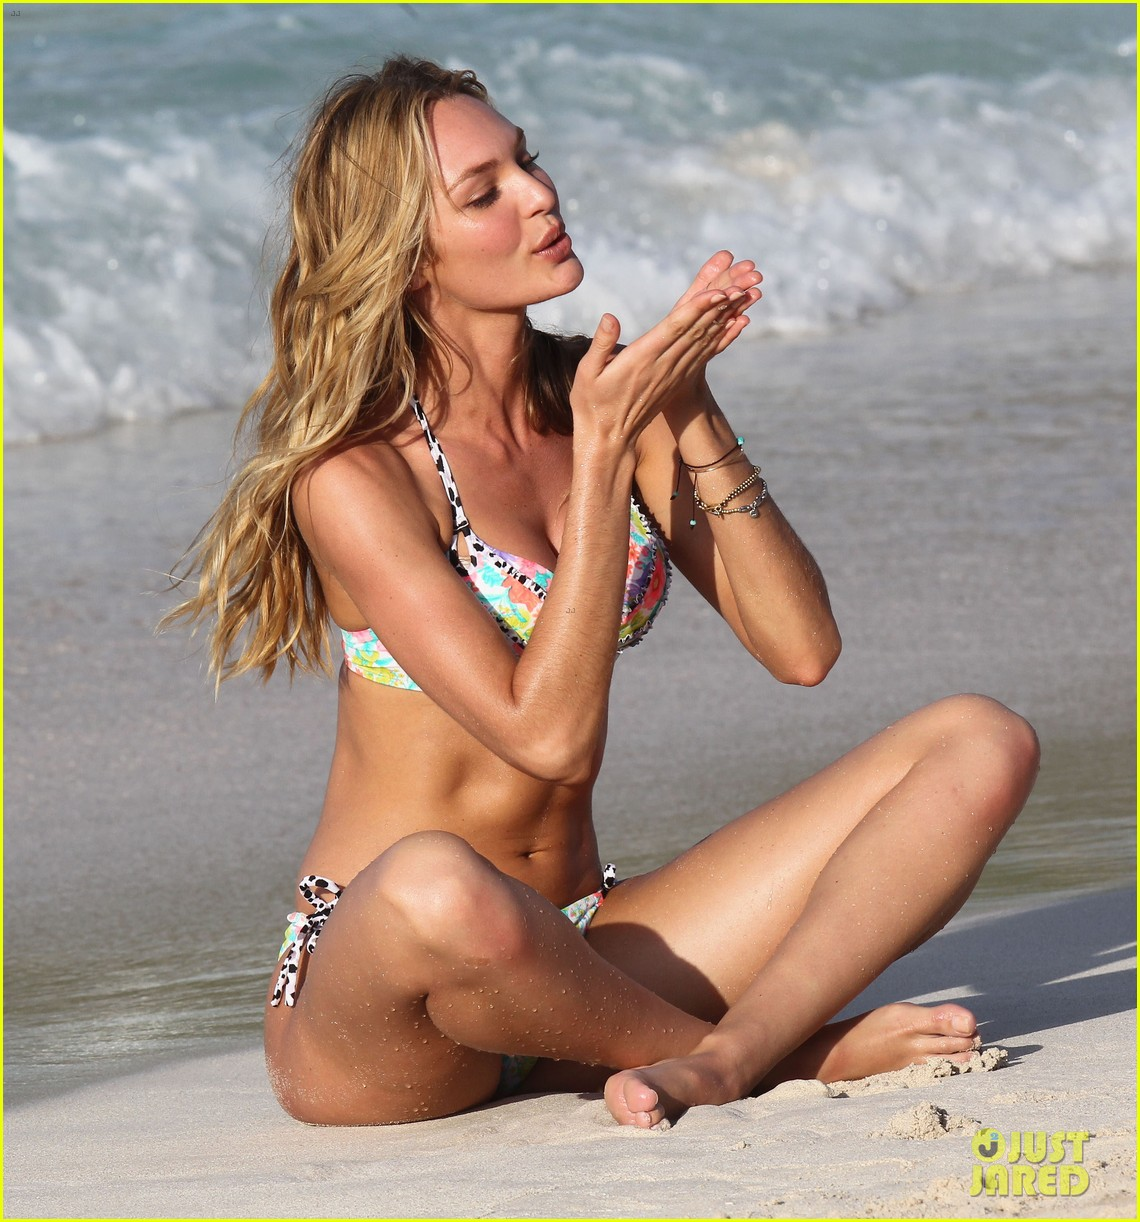 candice swanepoel in bikini photo shoot on the beach 21